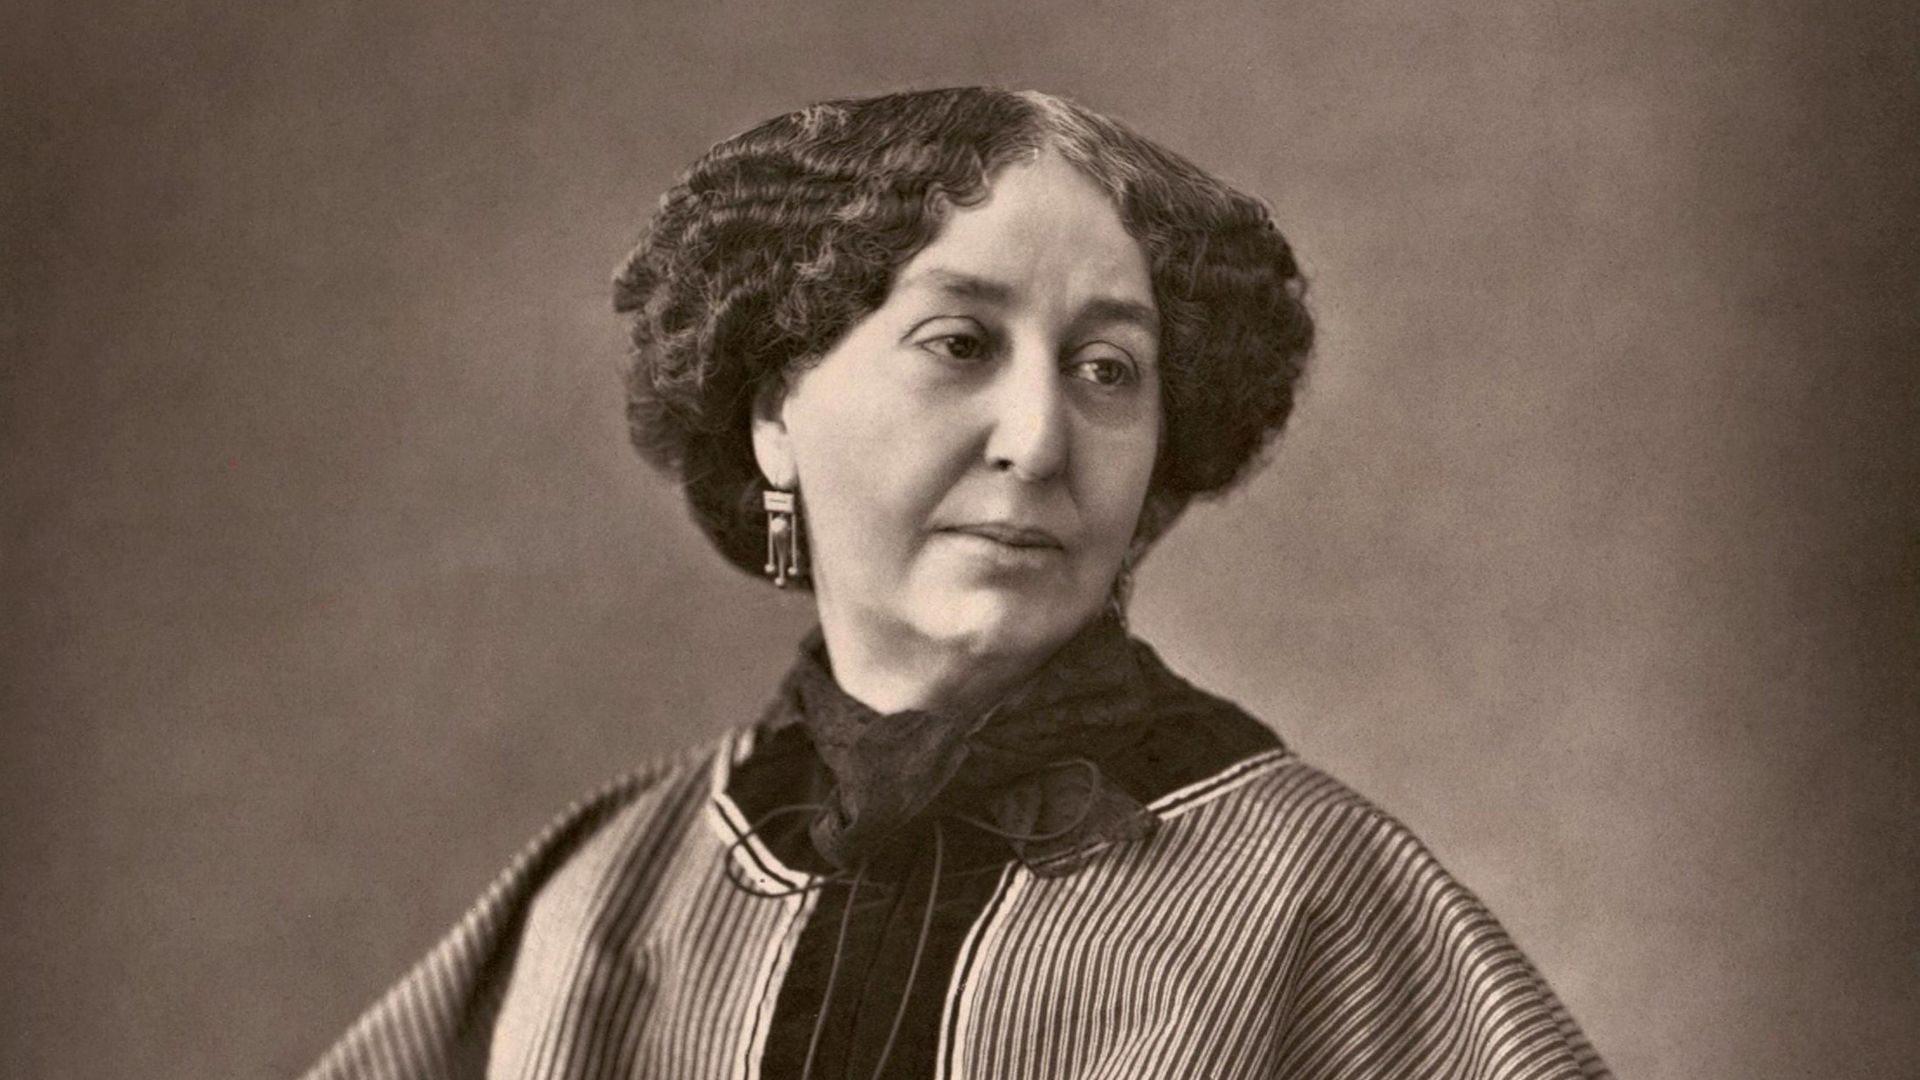 George Sand (1804-1876) French novelist and memoirist - Credit: Universal Images Group via Getty